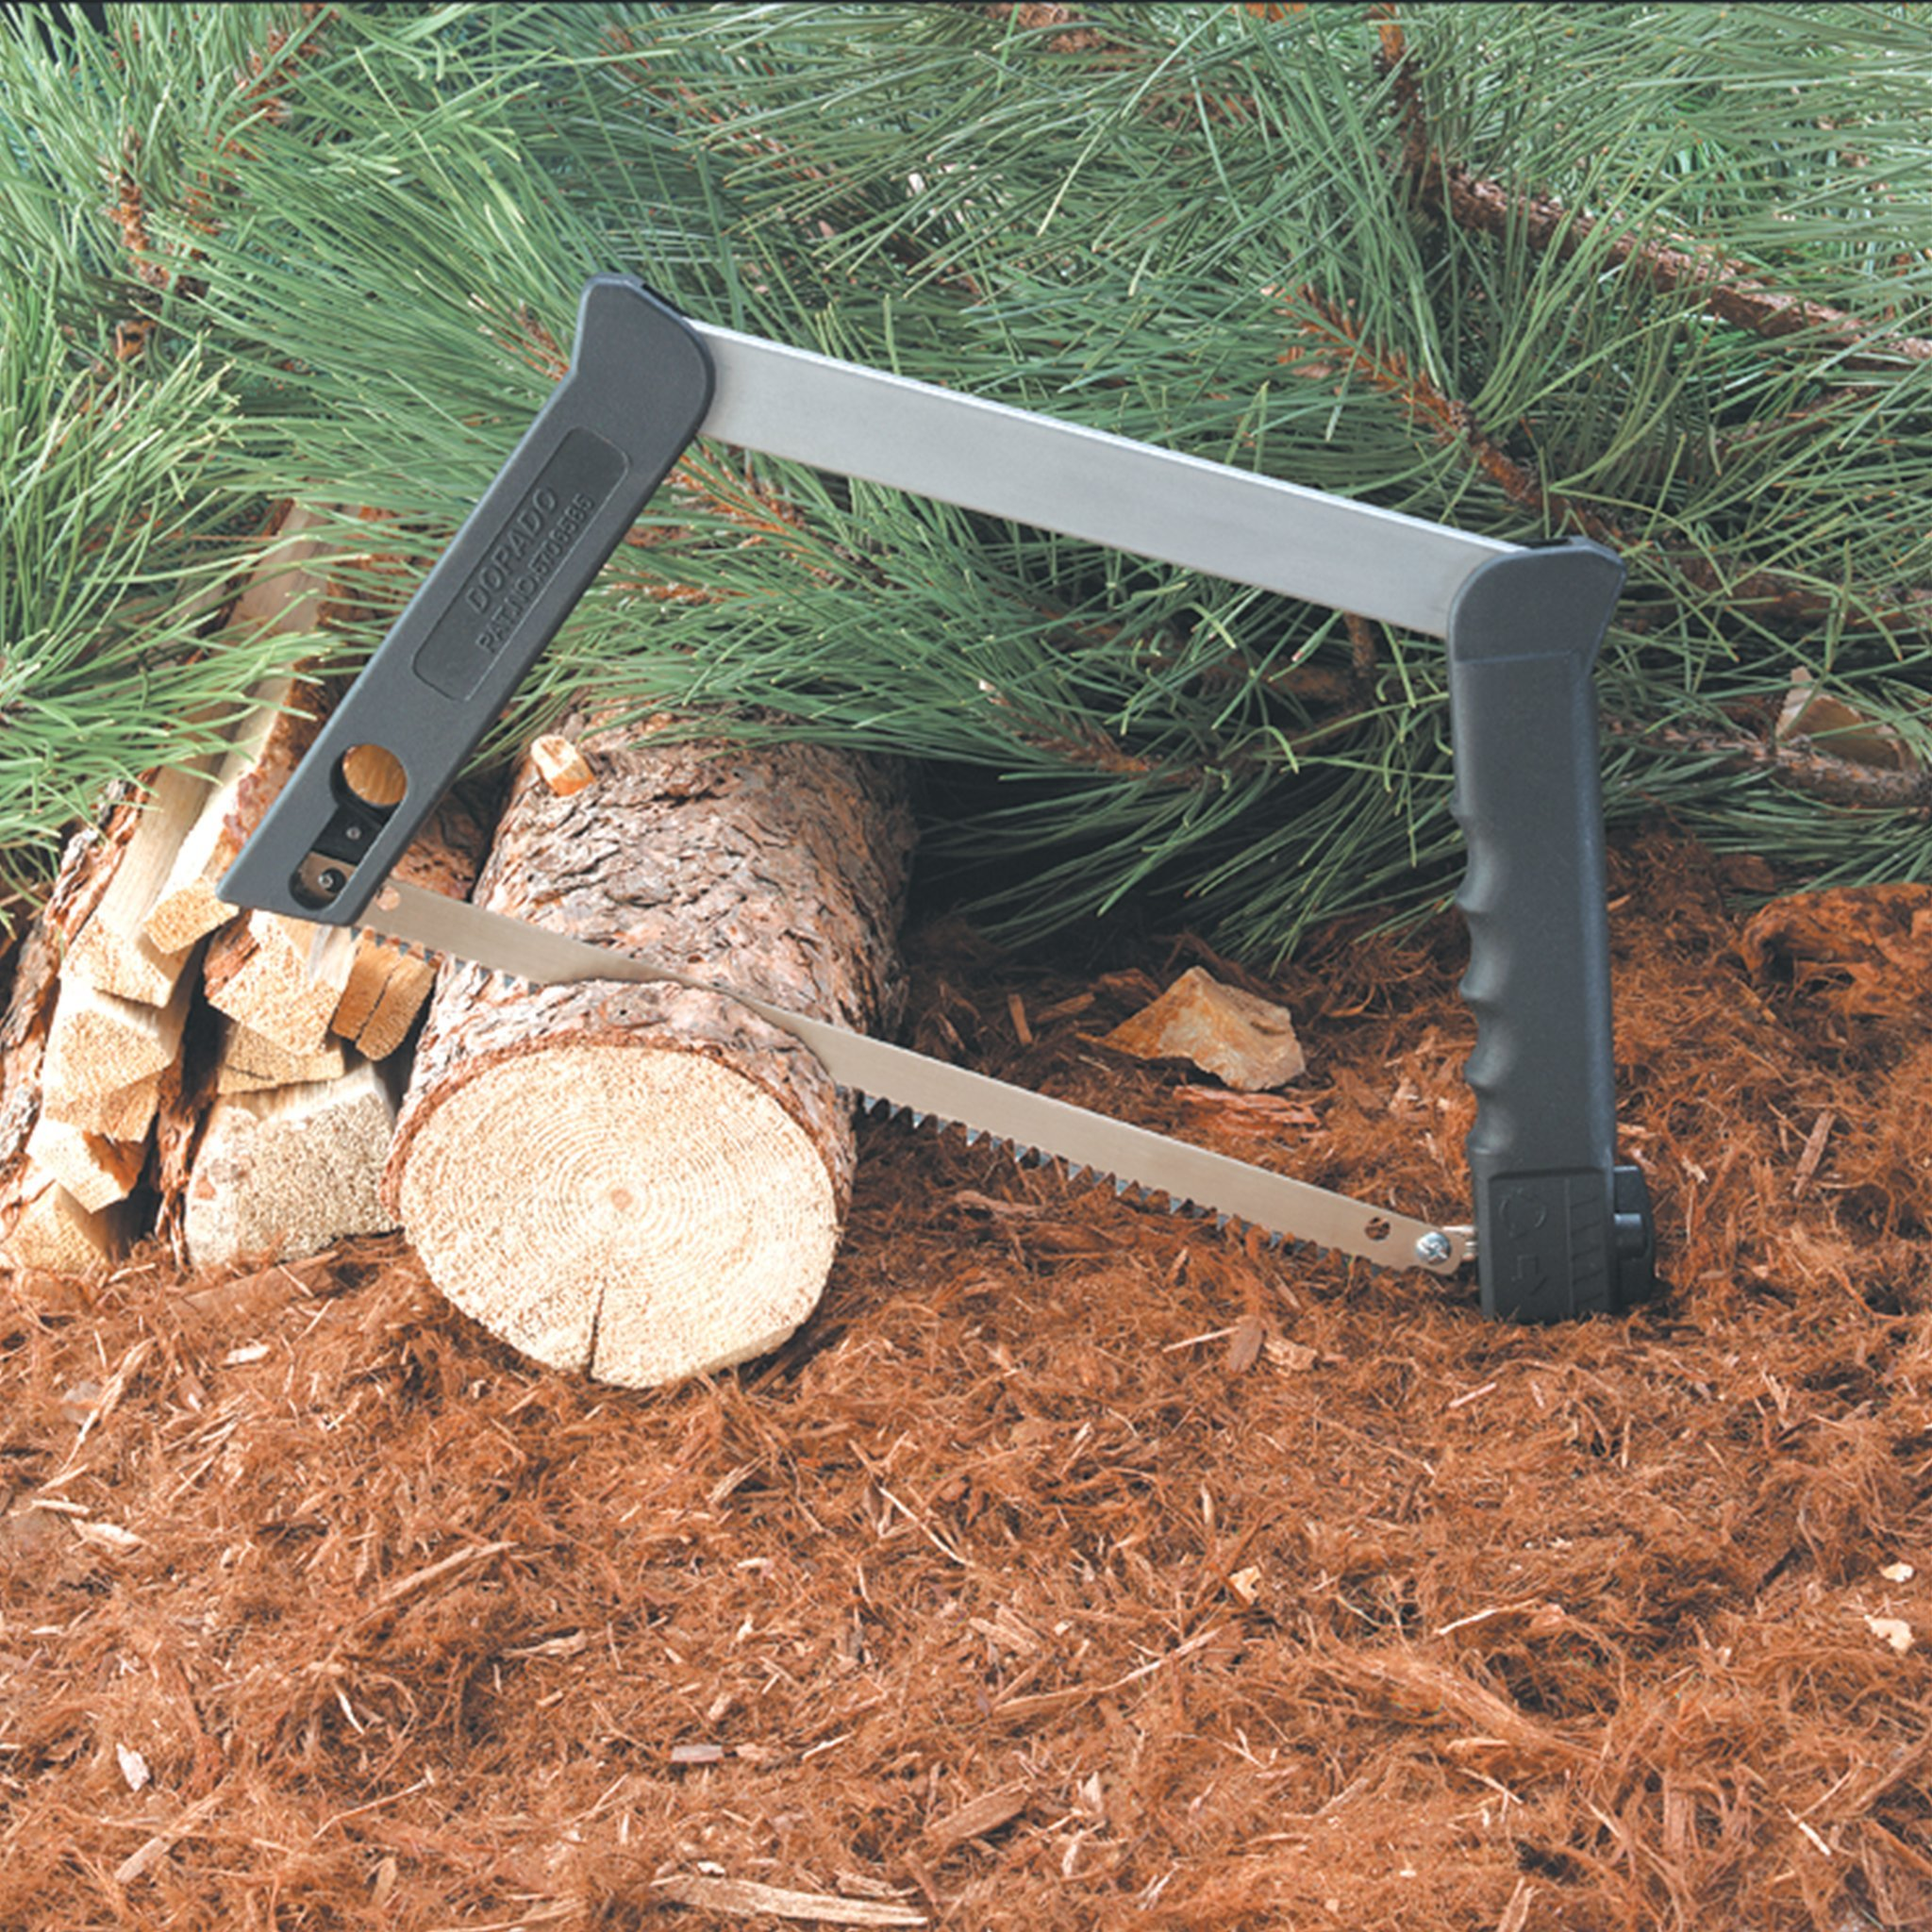 Outdoor Edge Pack Saw, PS-100, Collapsible 12 Inch Camp, Backpacking and Hunting Saw with 3 Blades for Wood, Metal, and Bone